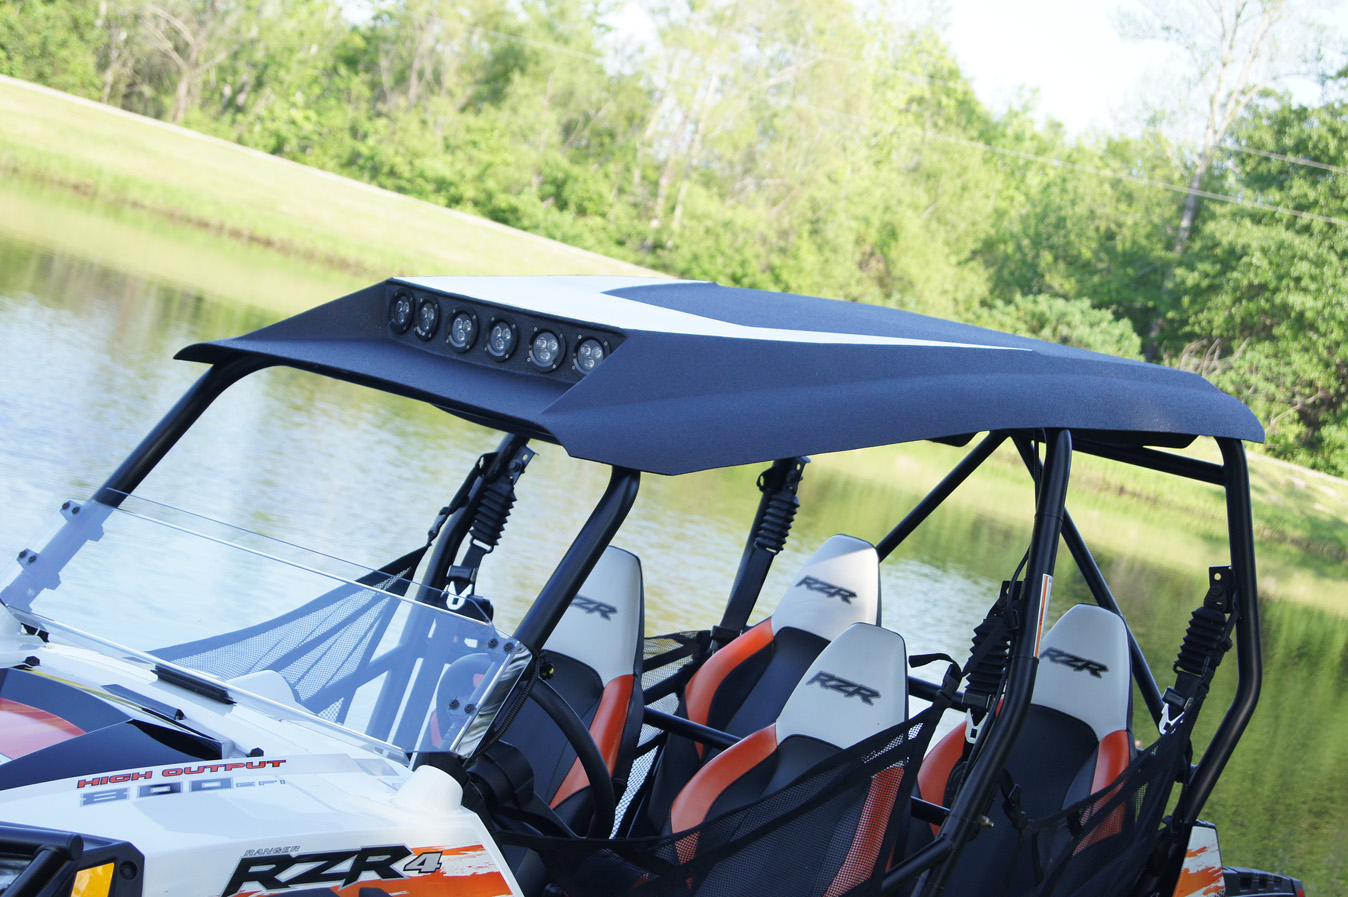 hight resolution of polaris rzr4 800 xp900 roof top stereo systems 2008 2013